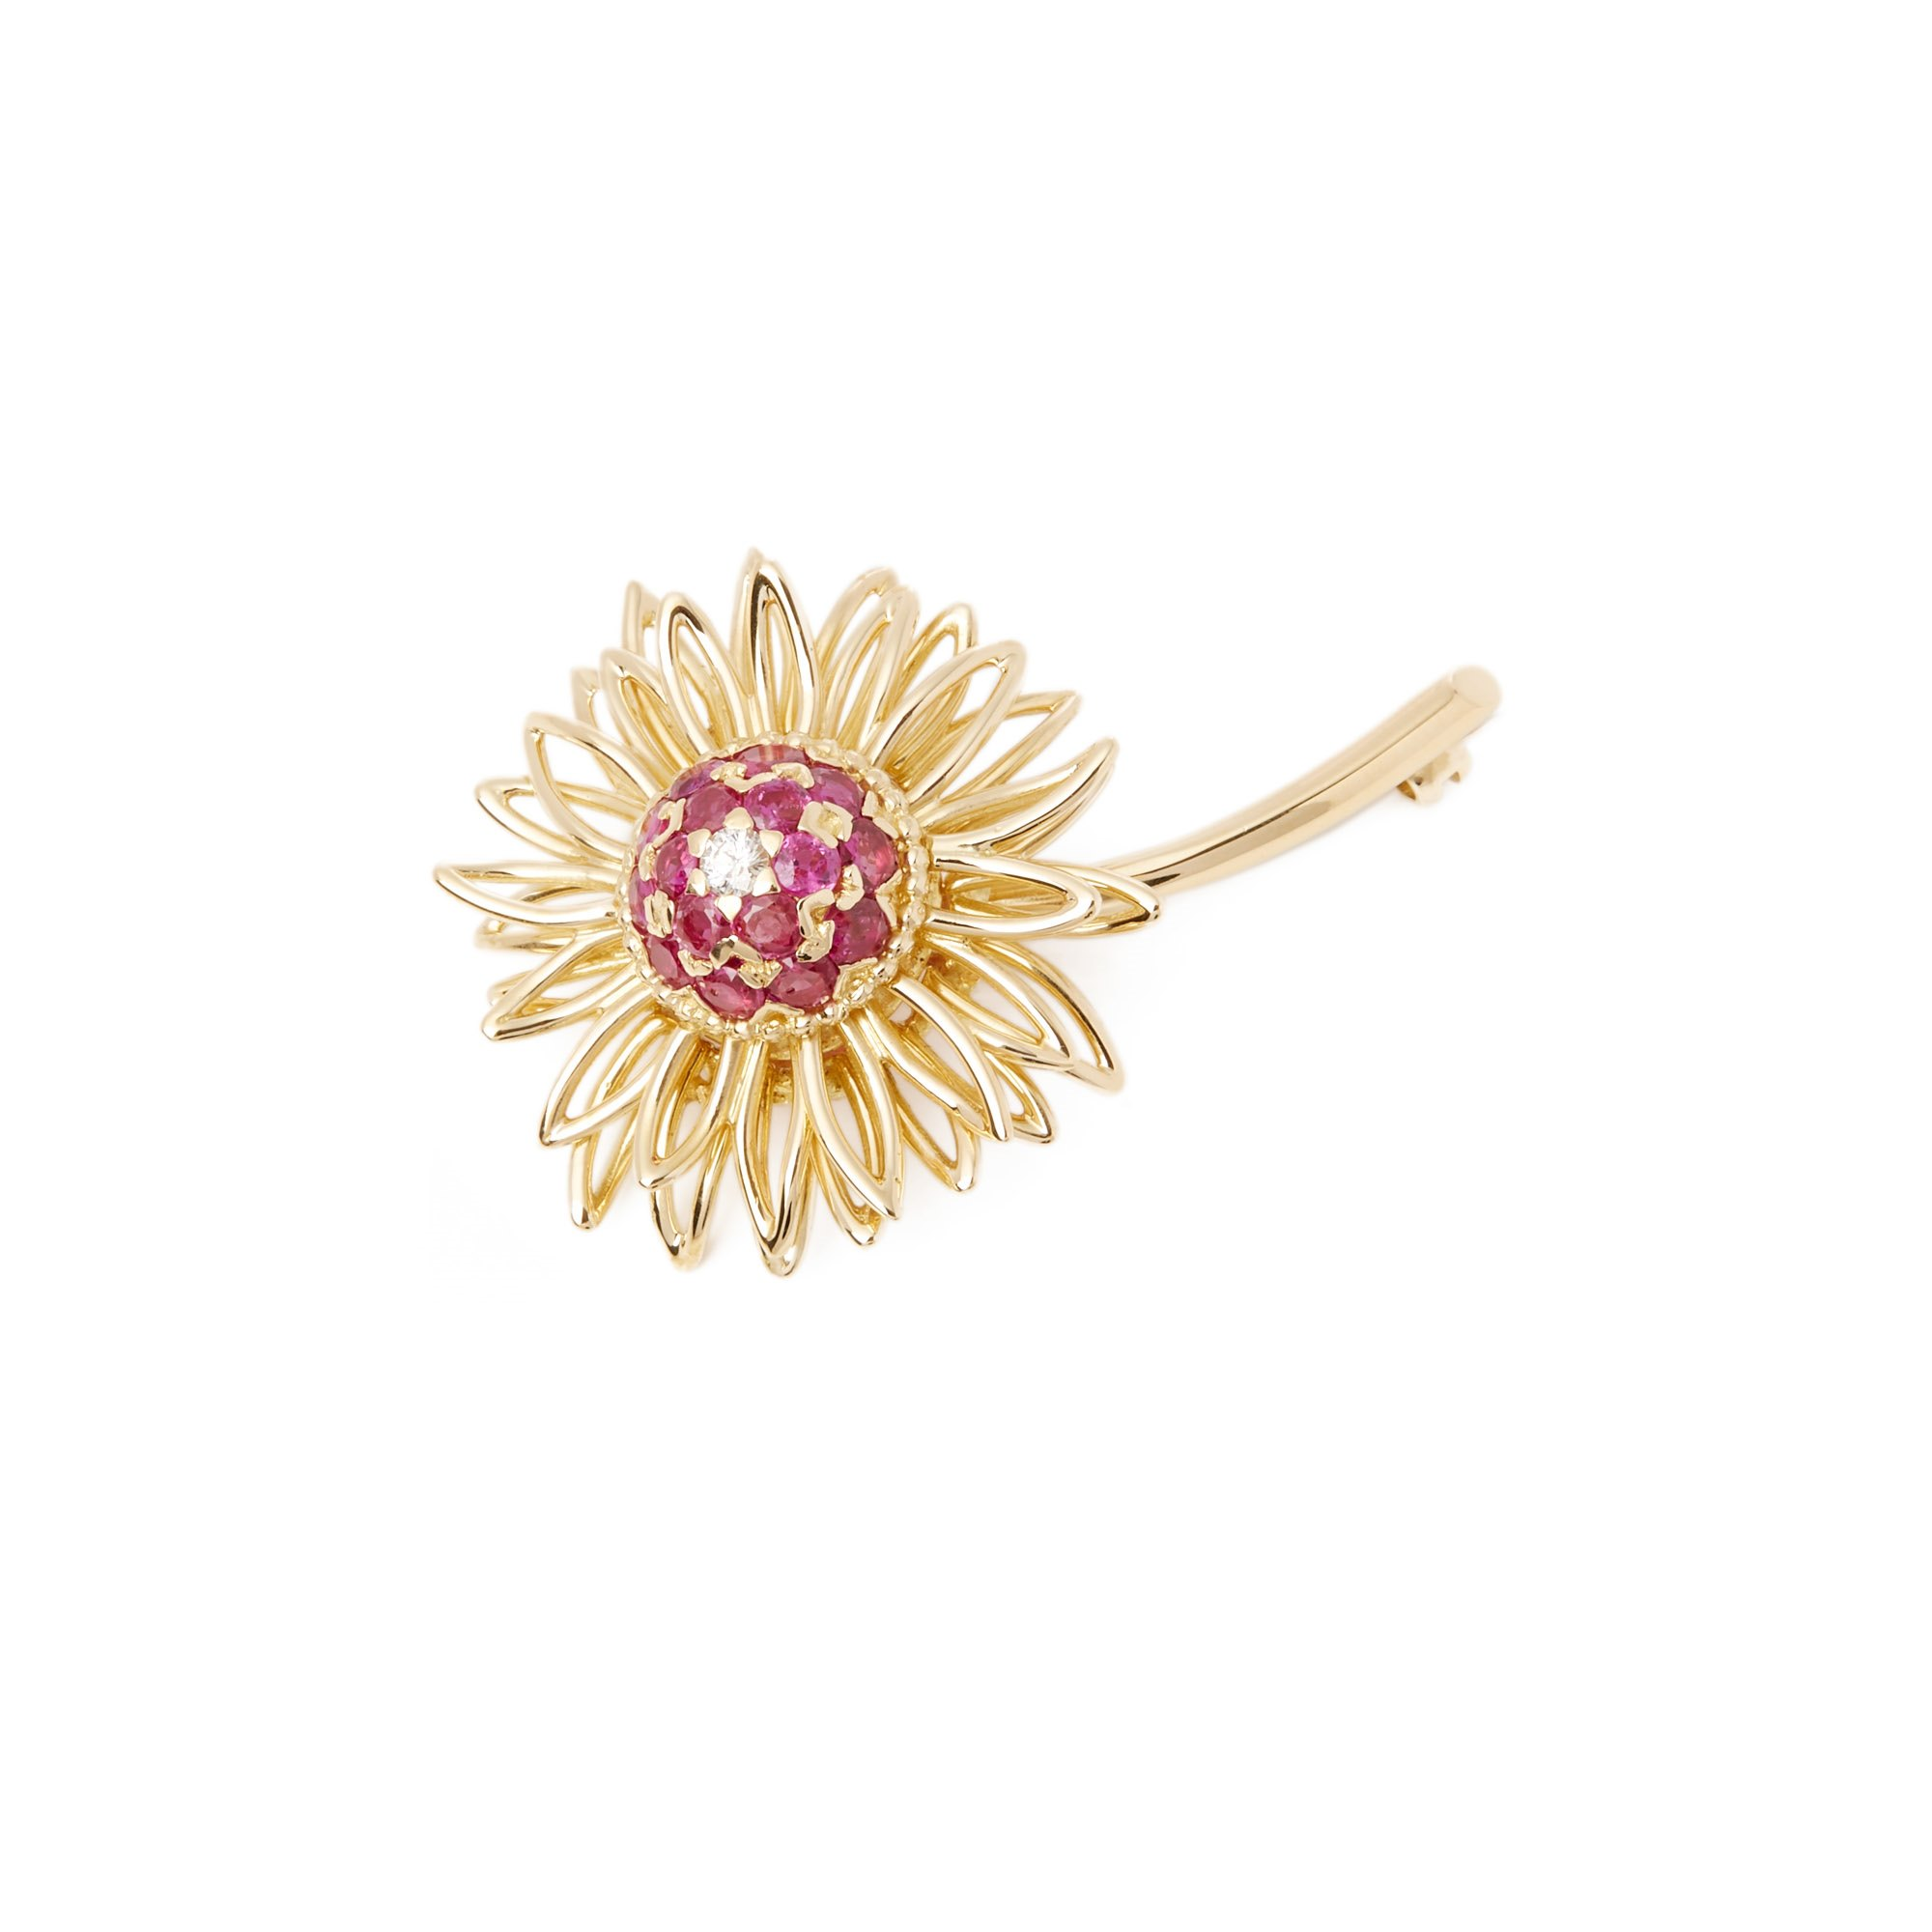 Kutchinsky 18k Yellow Gold Ruby and Diamond Vintage Brooch